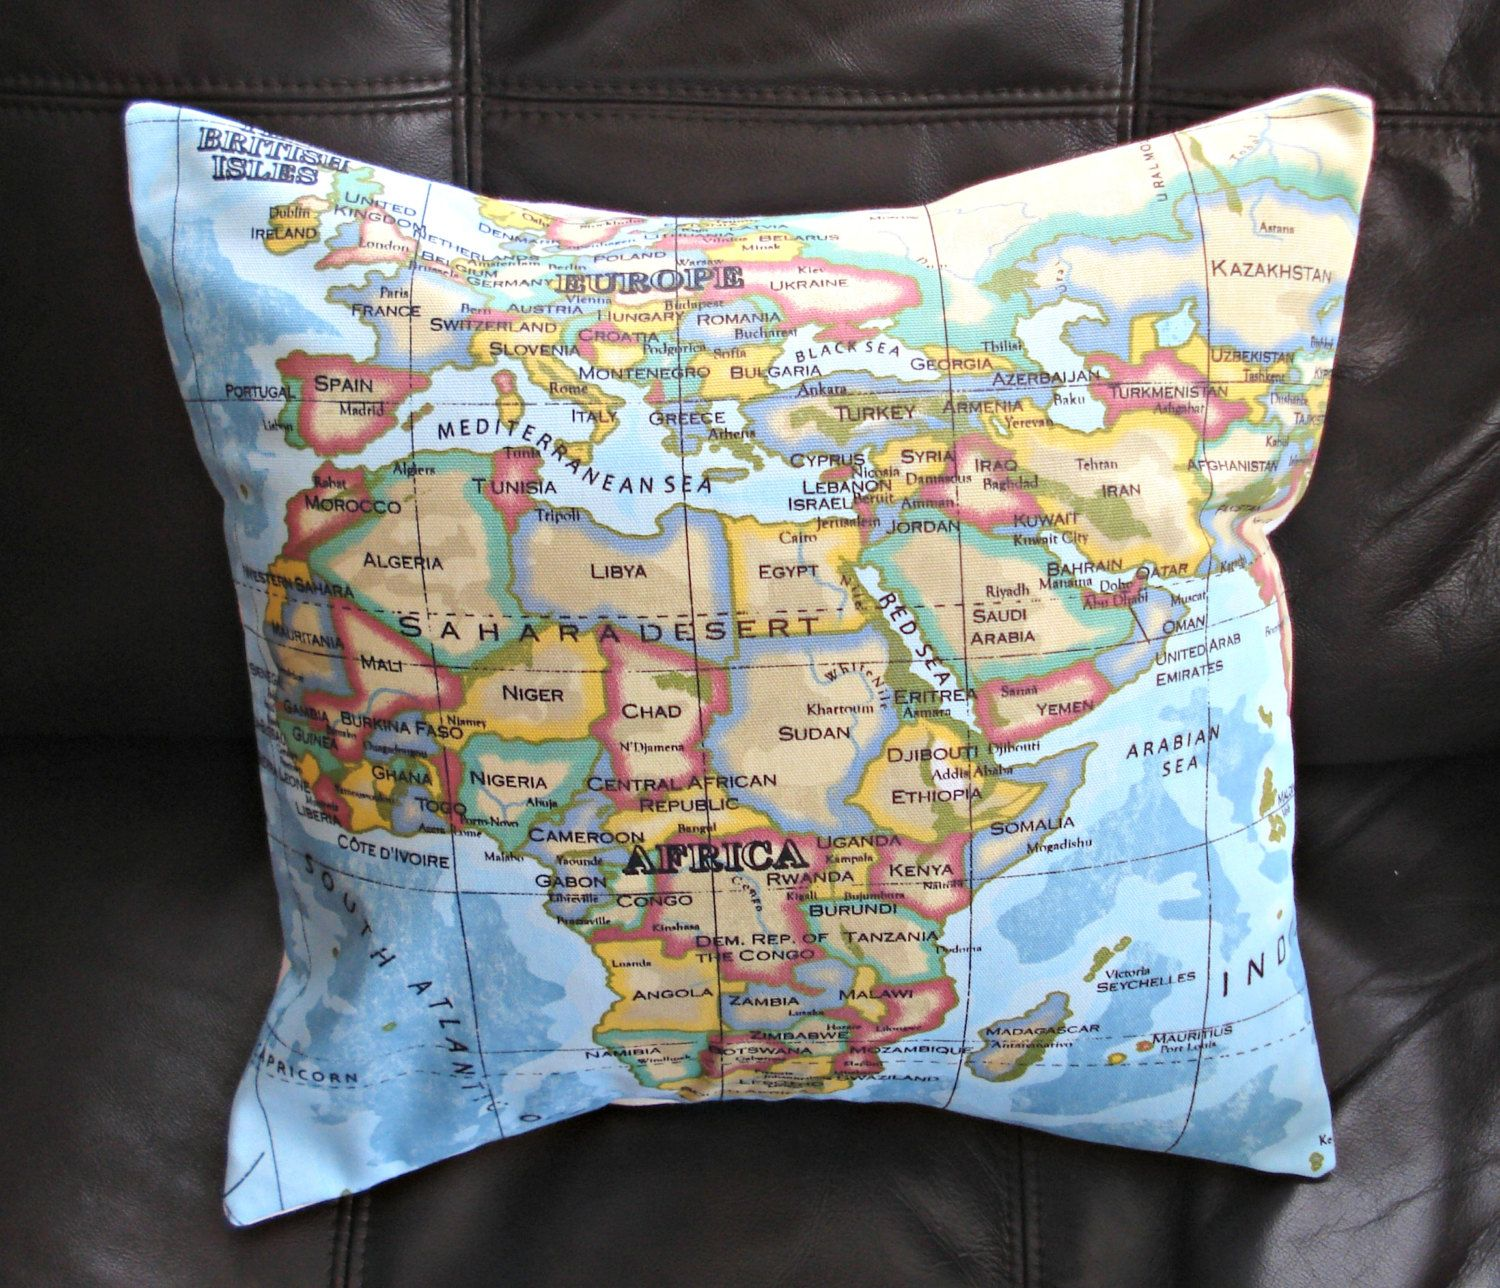 Pillow world map atlas 16 inch uk ireland africa madagascar pillow world map atlas 16 inch uk ireland africa madagascar seychelles egypt india tibet europe united kingdon italy france spain greece gumiabroncs Gallery